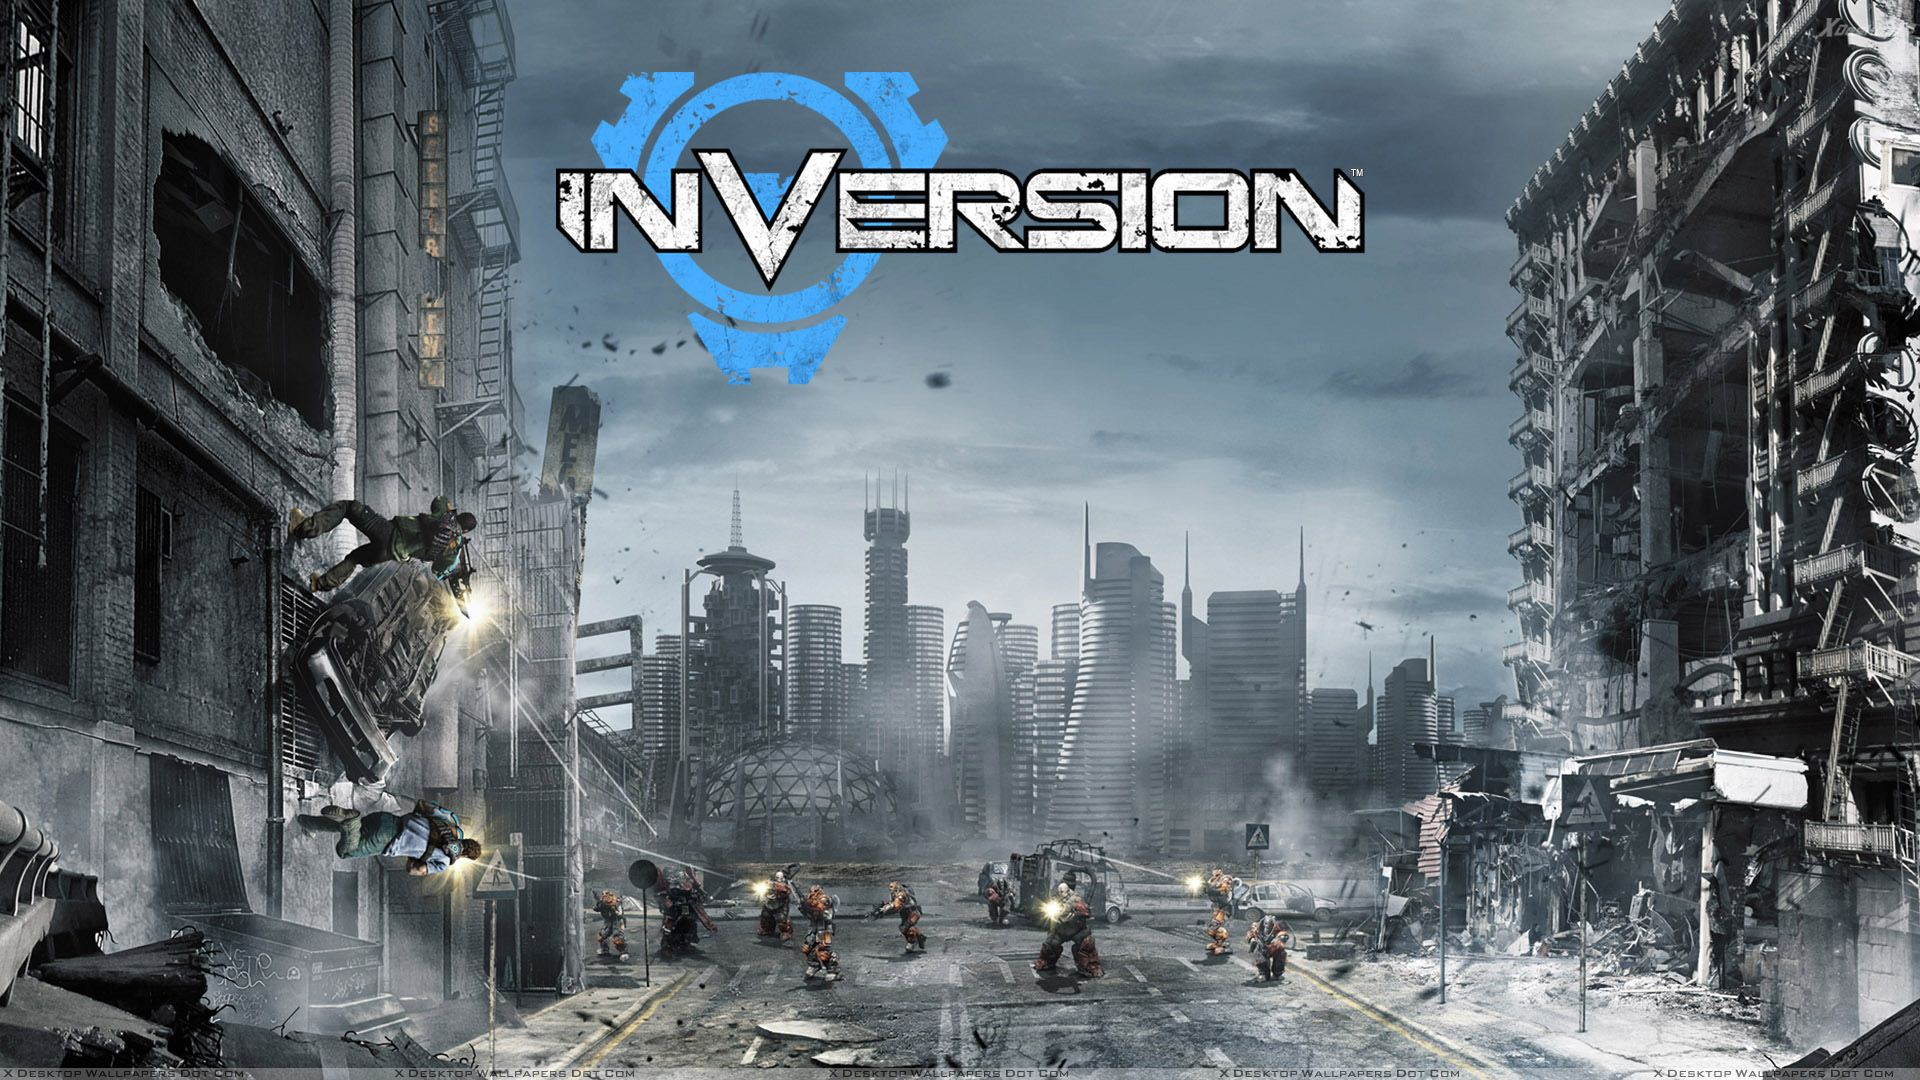 Inversion Wallpapers, Photos & Images in HD